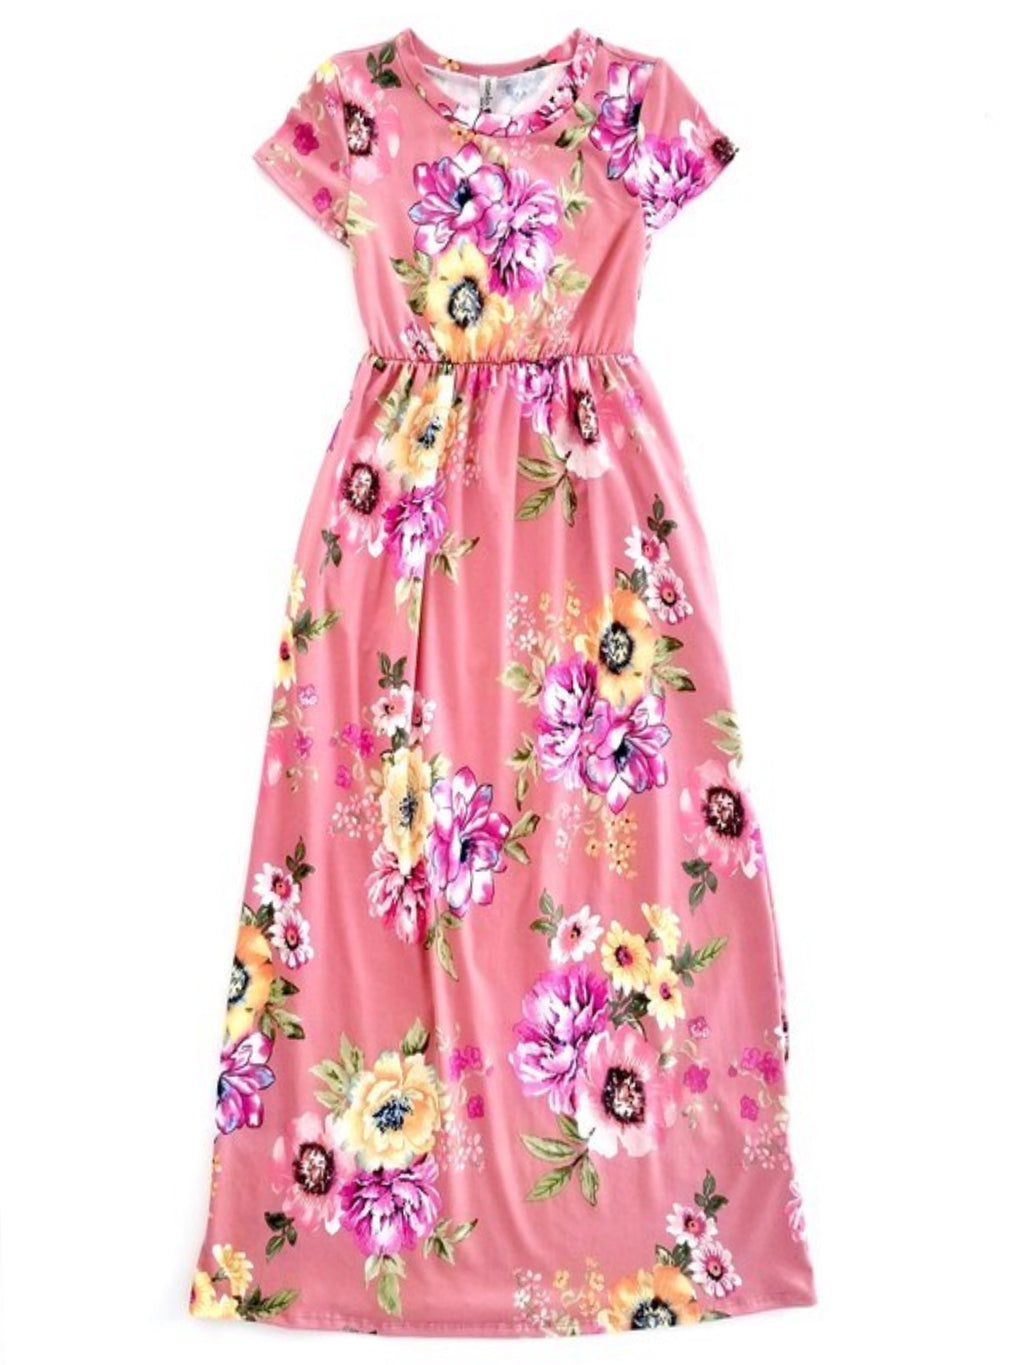 Waterlily Maxi Dress with Hidden Pockets